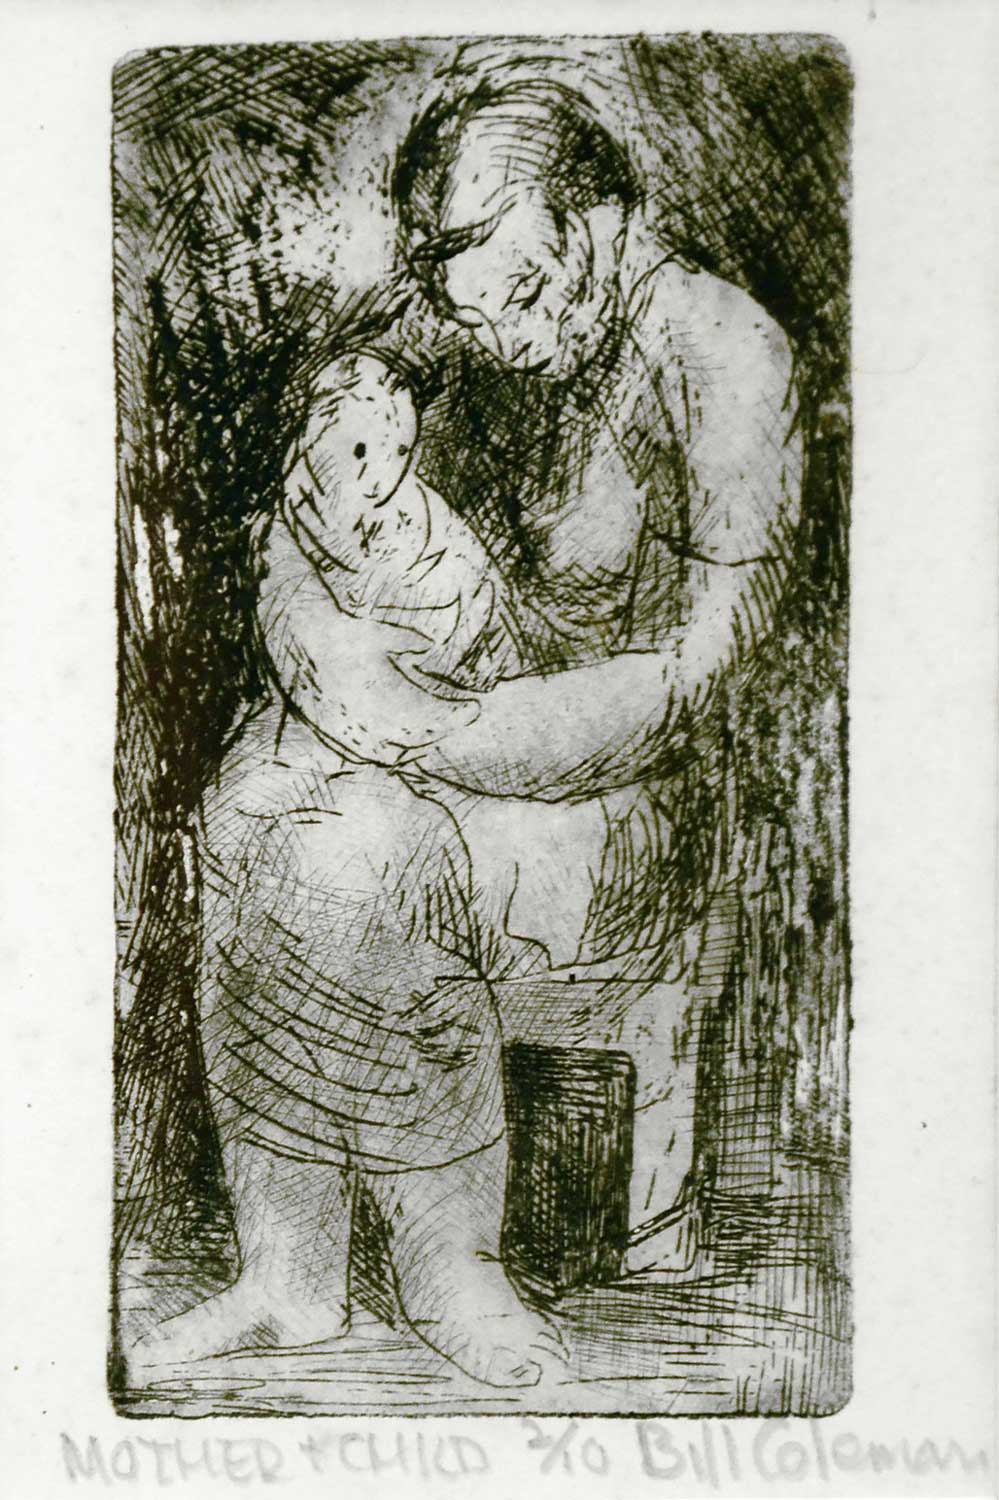 Bill Coleman Mother and Child artwork